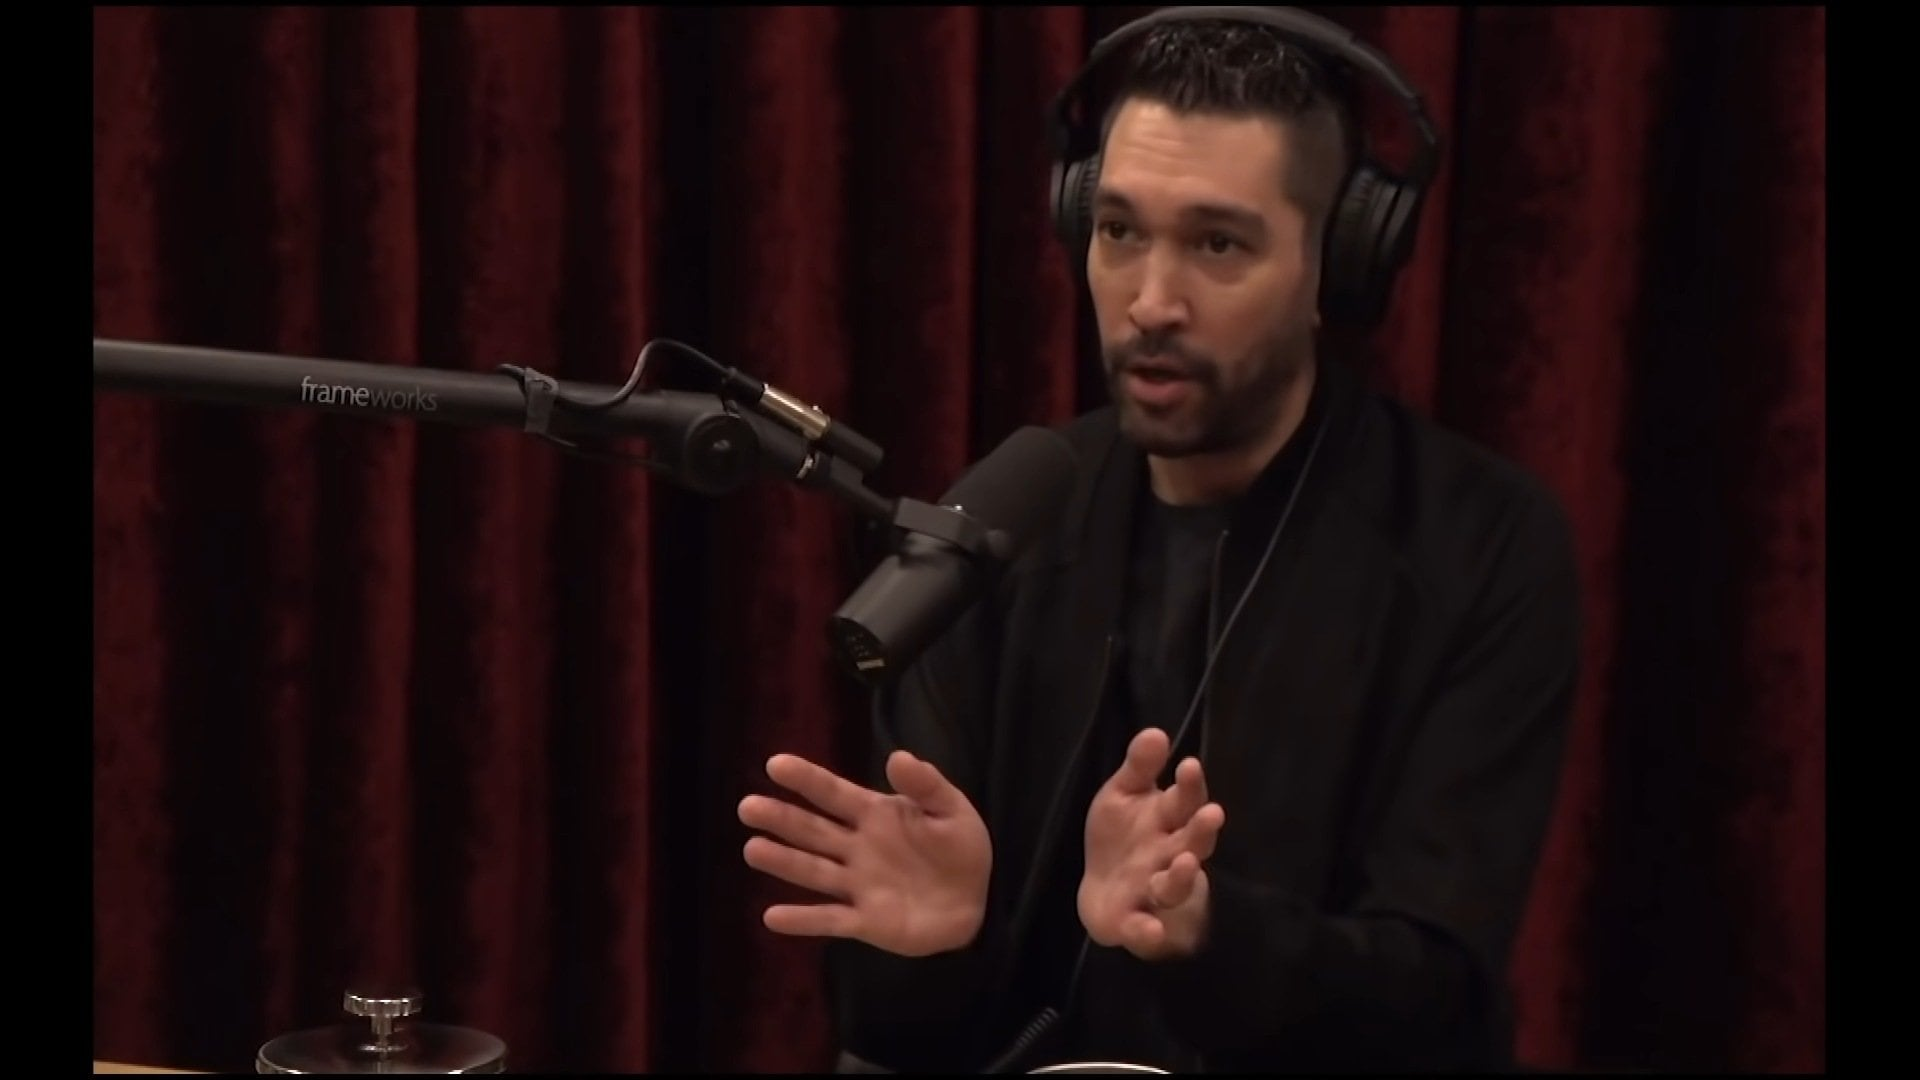 Dave Smith, comedian, podcaster at The Joe Rogan Experience podcast. Image credit: YouTube